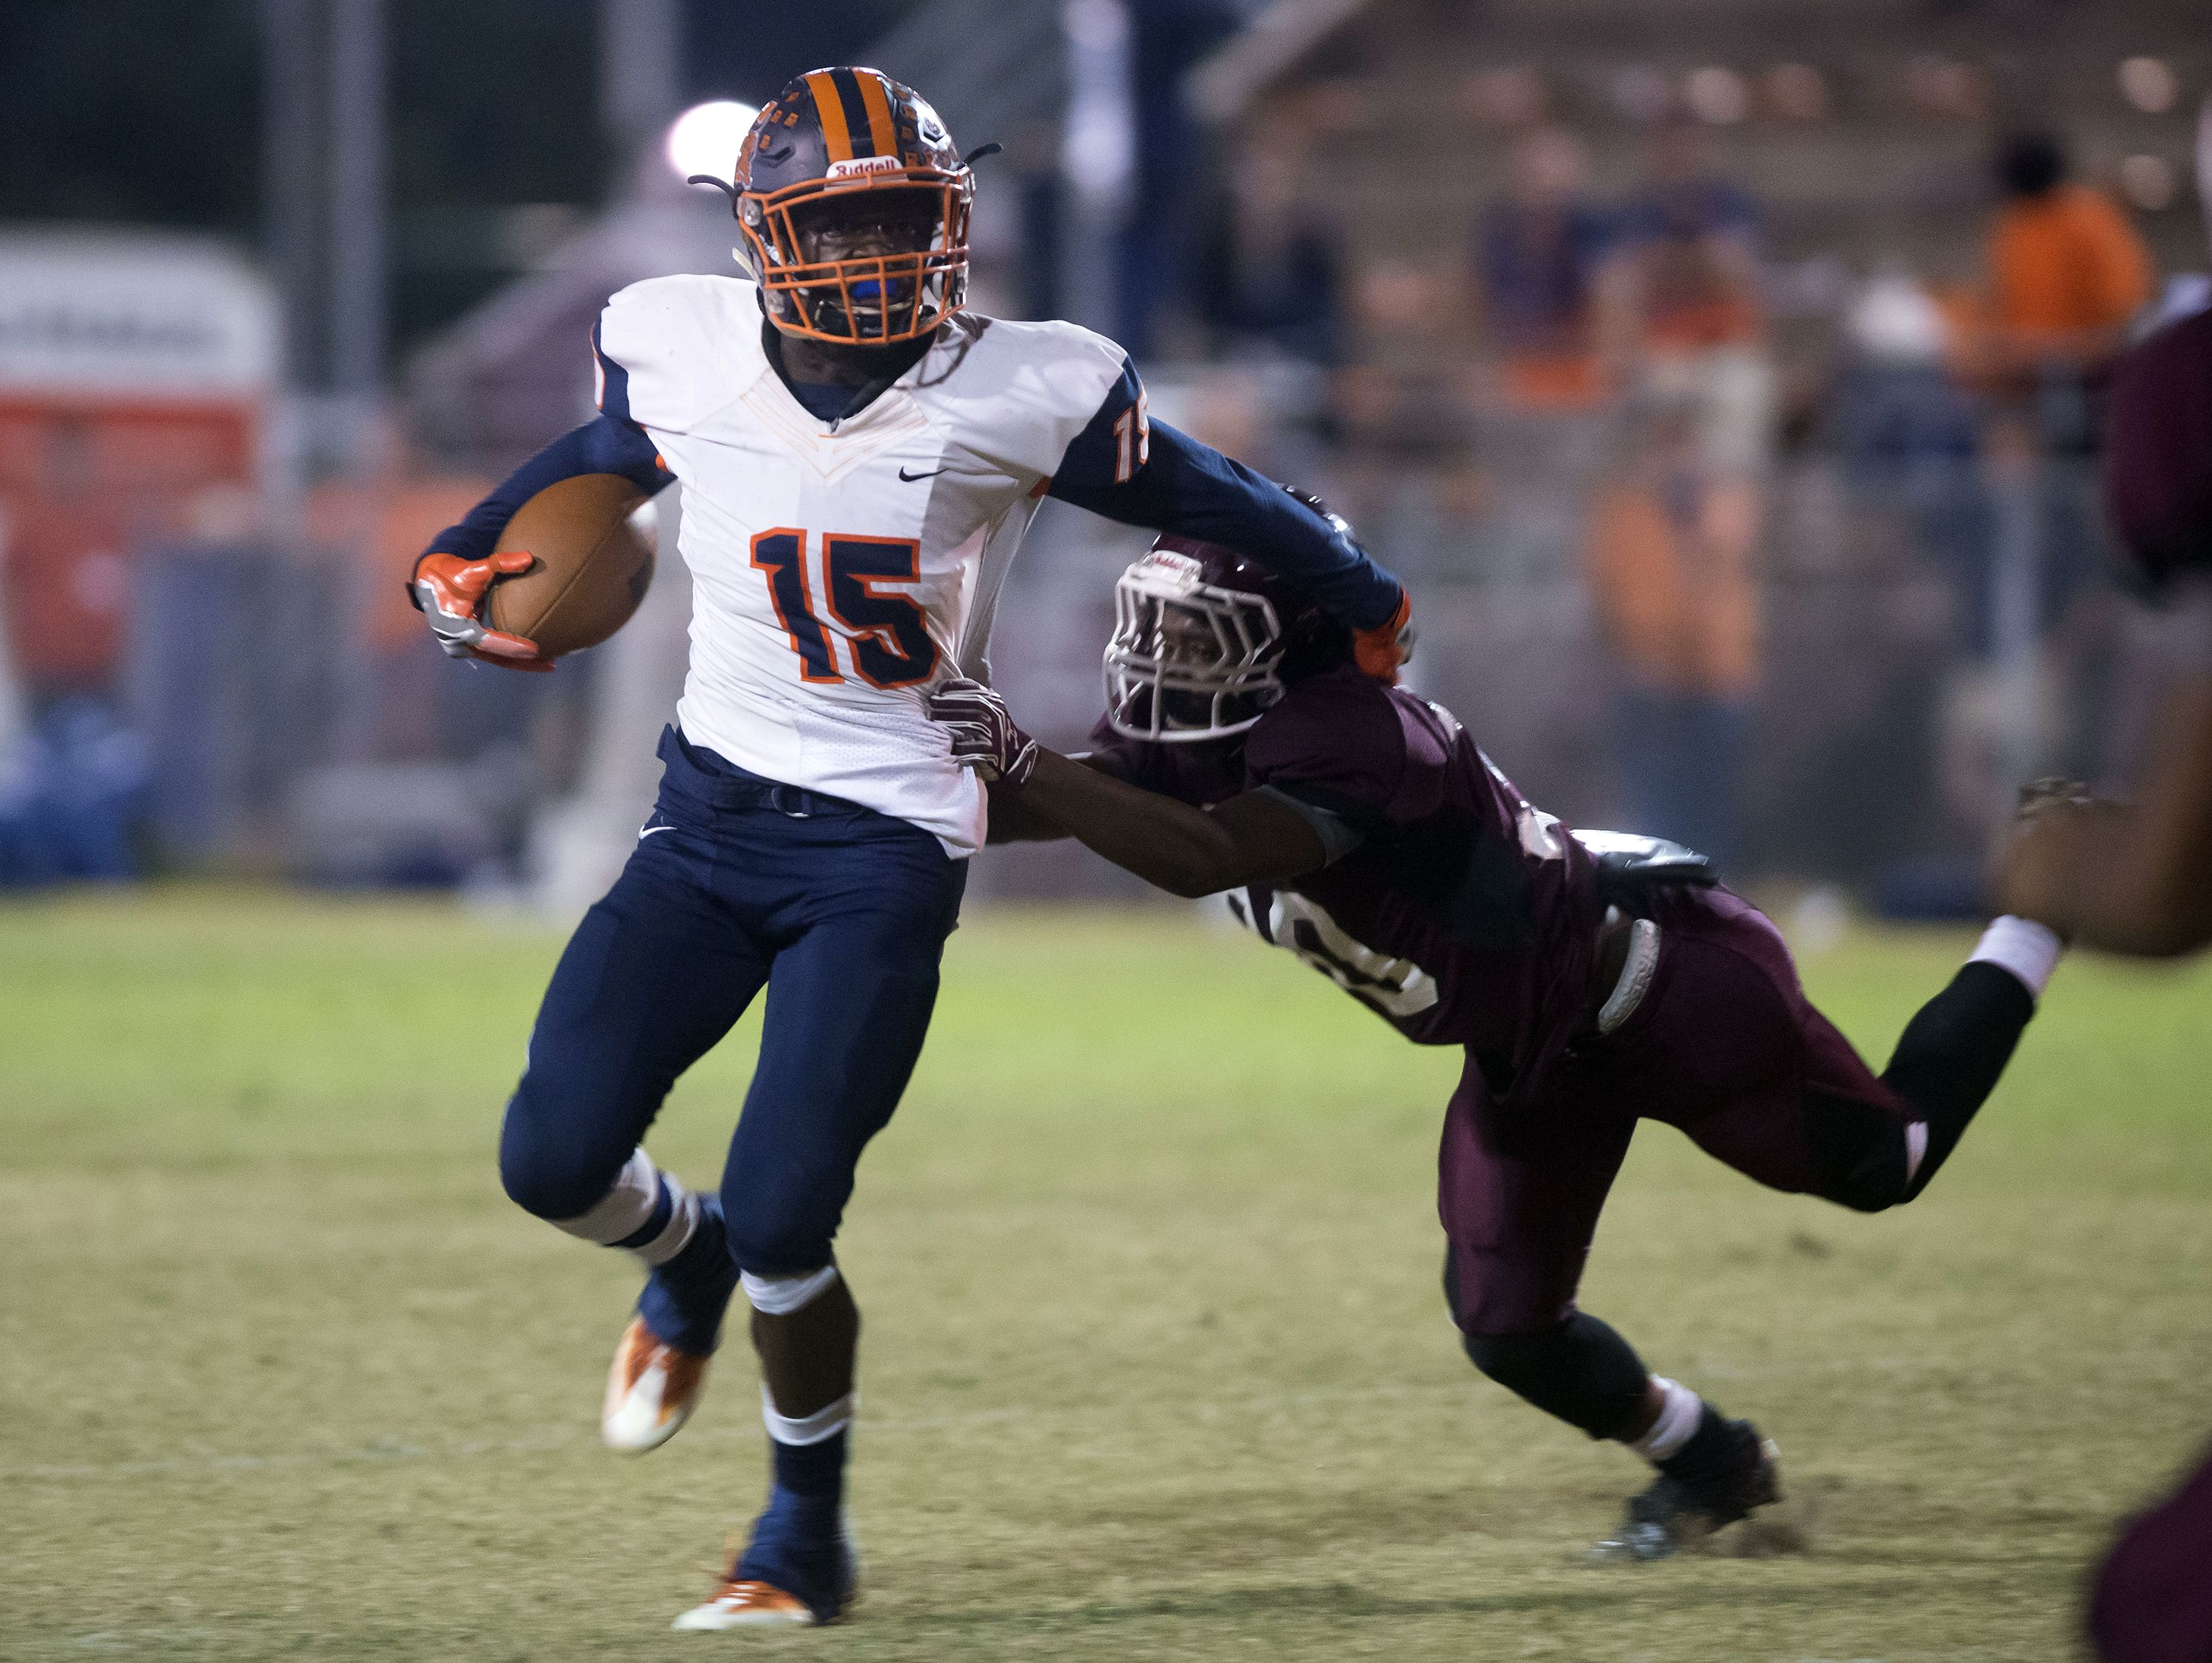 Escambia High School running back, Steven McGhee, (No. 15), shrugs off a tackle from Pensacola High School line backer, Duane Peazant, (N0. 20) during Friday night's last regular season game.